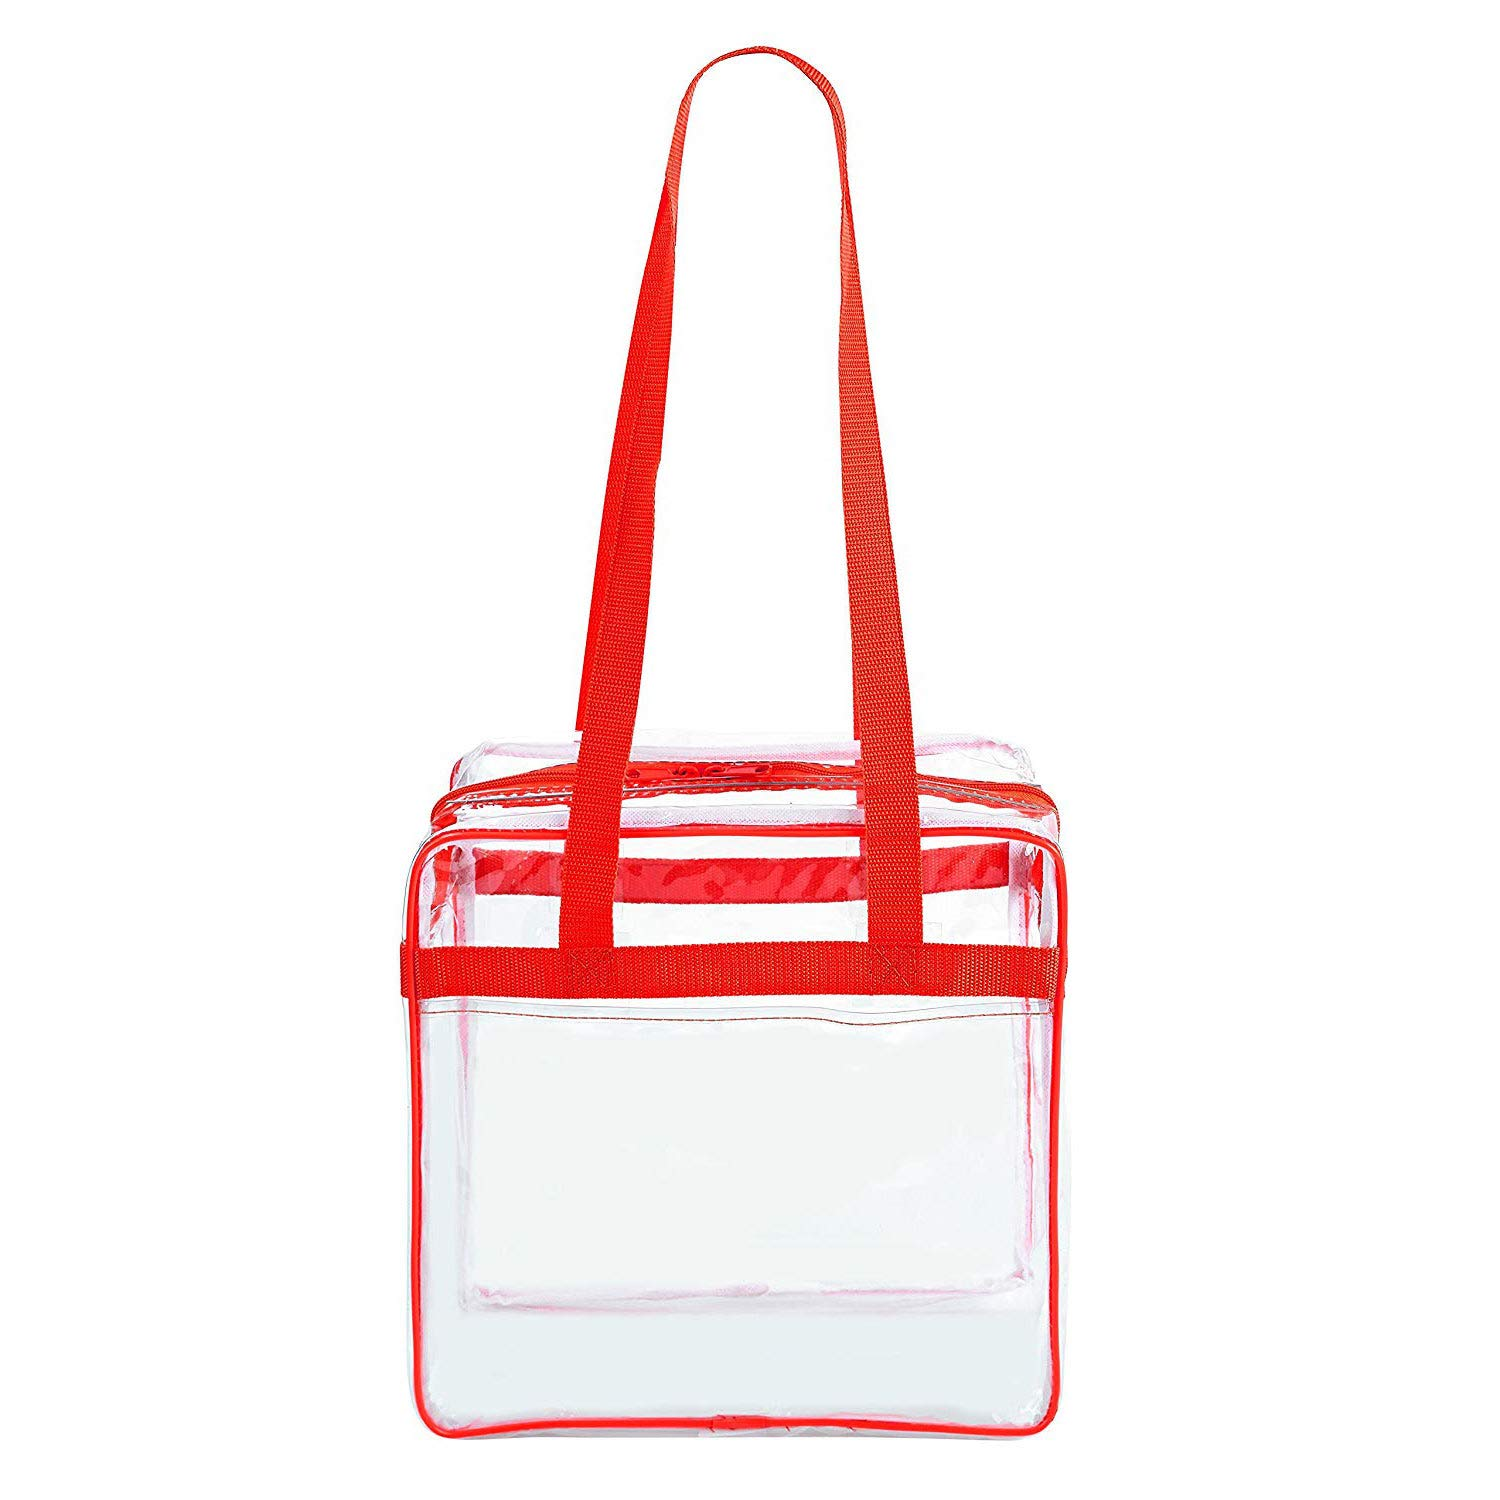 Clear 12 x 12 x 6 Stadium Tote Bag with Side Pocket and 35 Shoulder Straps